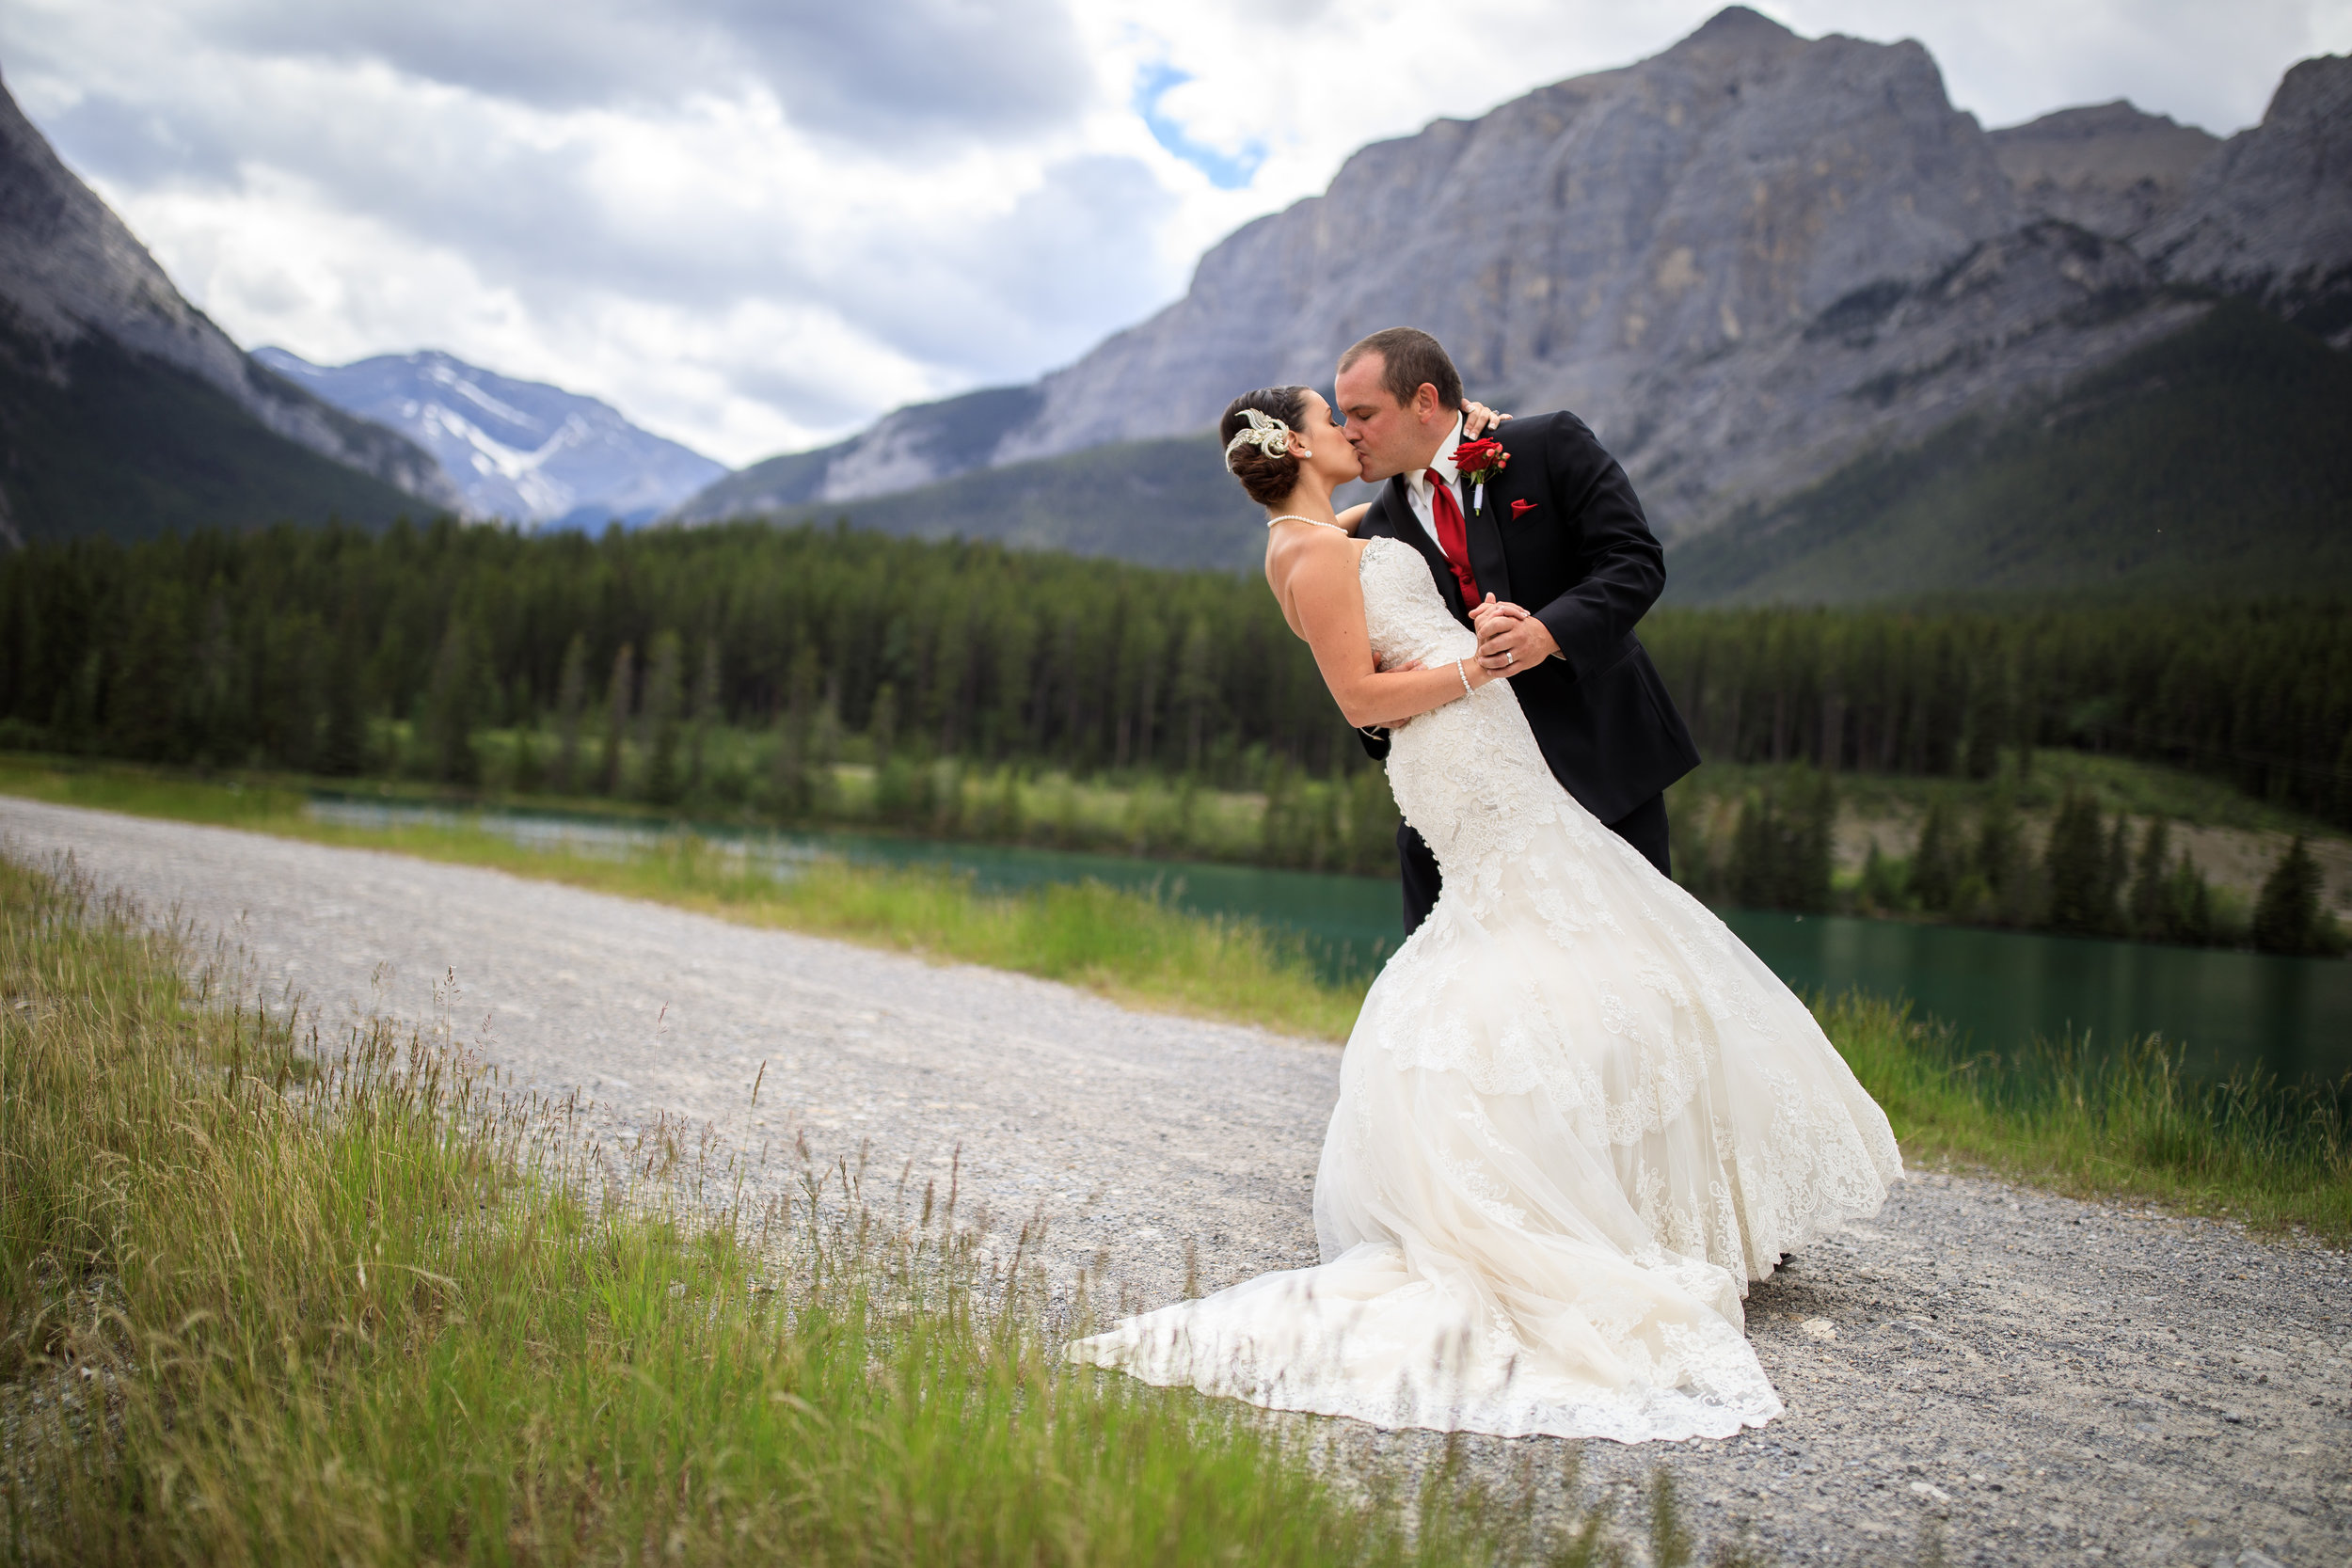 Canmore Wedding Venues - Click here to learn more about the wedding venues in Canmore.